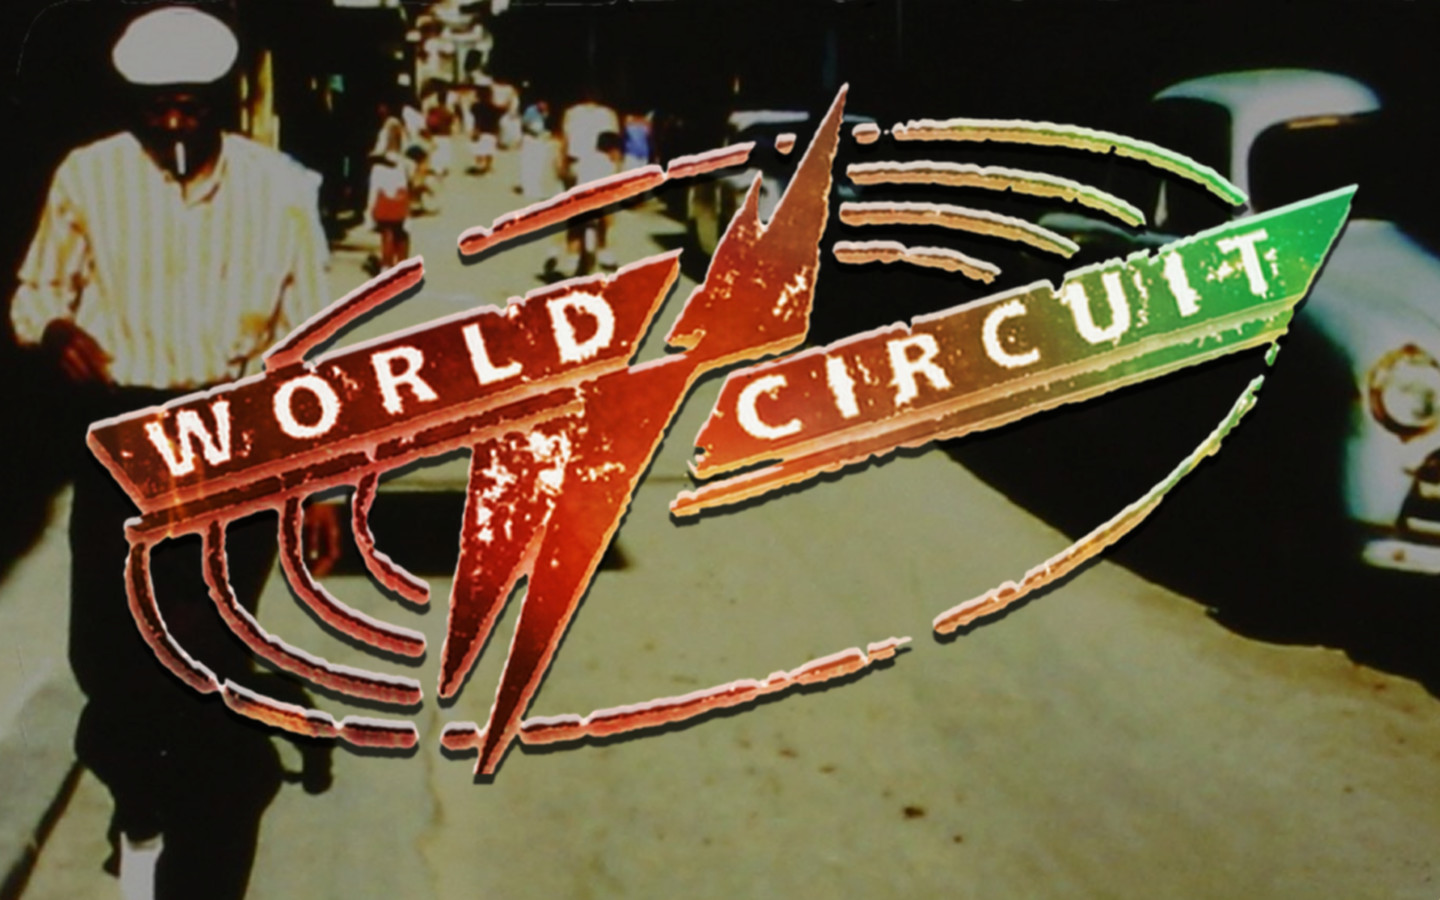 World Circuit Records & Buena Vista Social Club